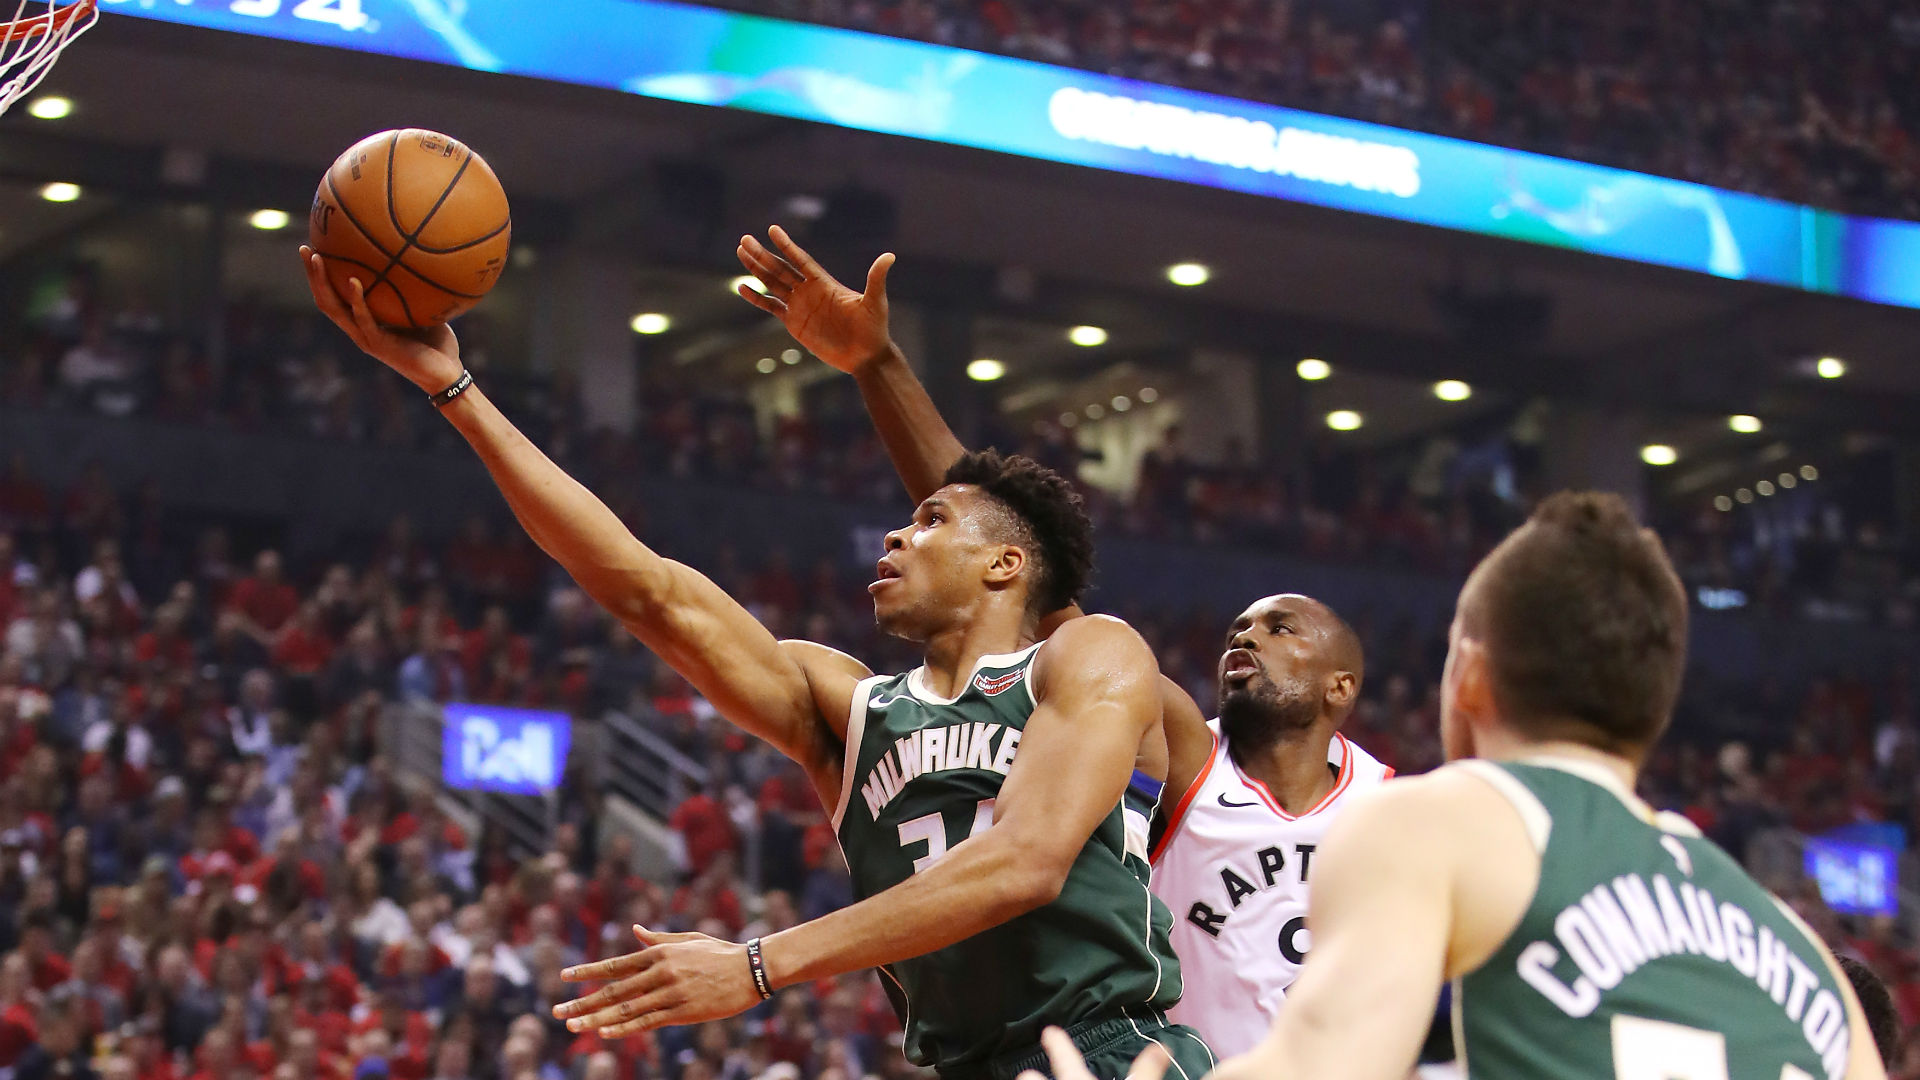 The Bucks' 2-0 lead in the Eastern Conference Finals is gone, but Giannis Antetokounmpo is relaxed heading into Game 5 with the Raptors.